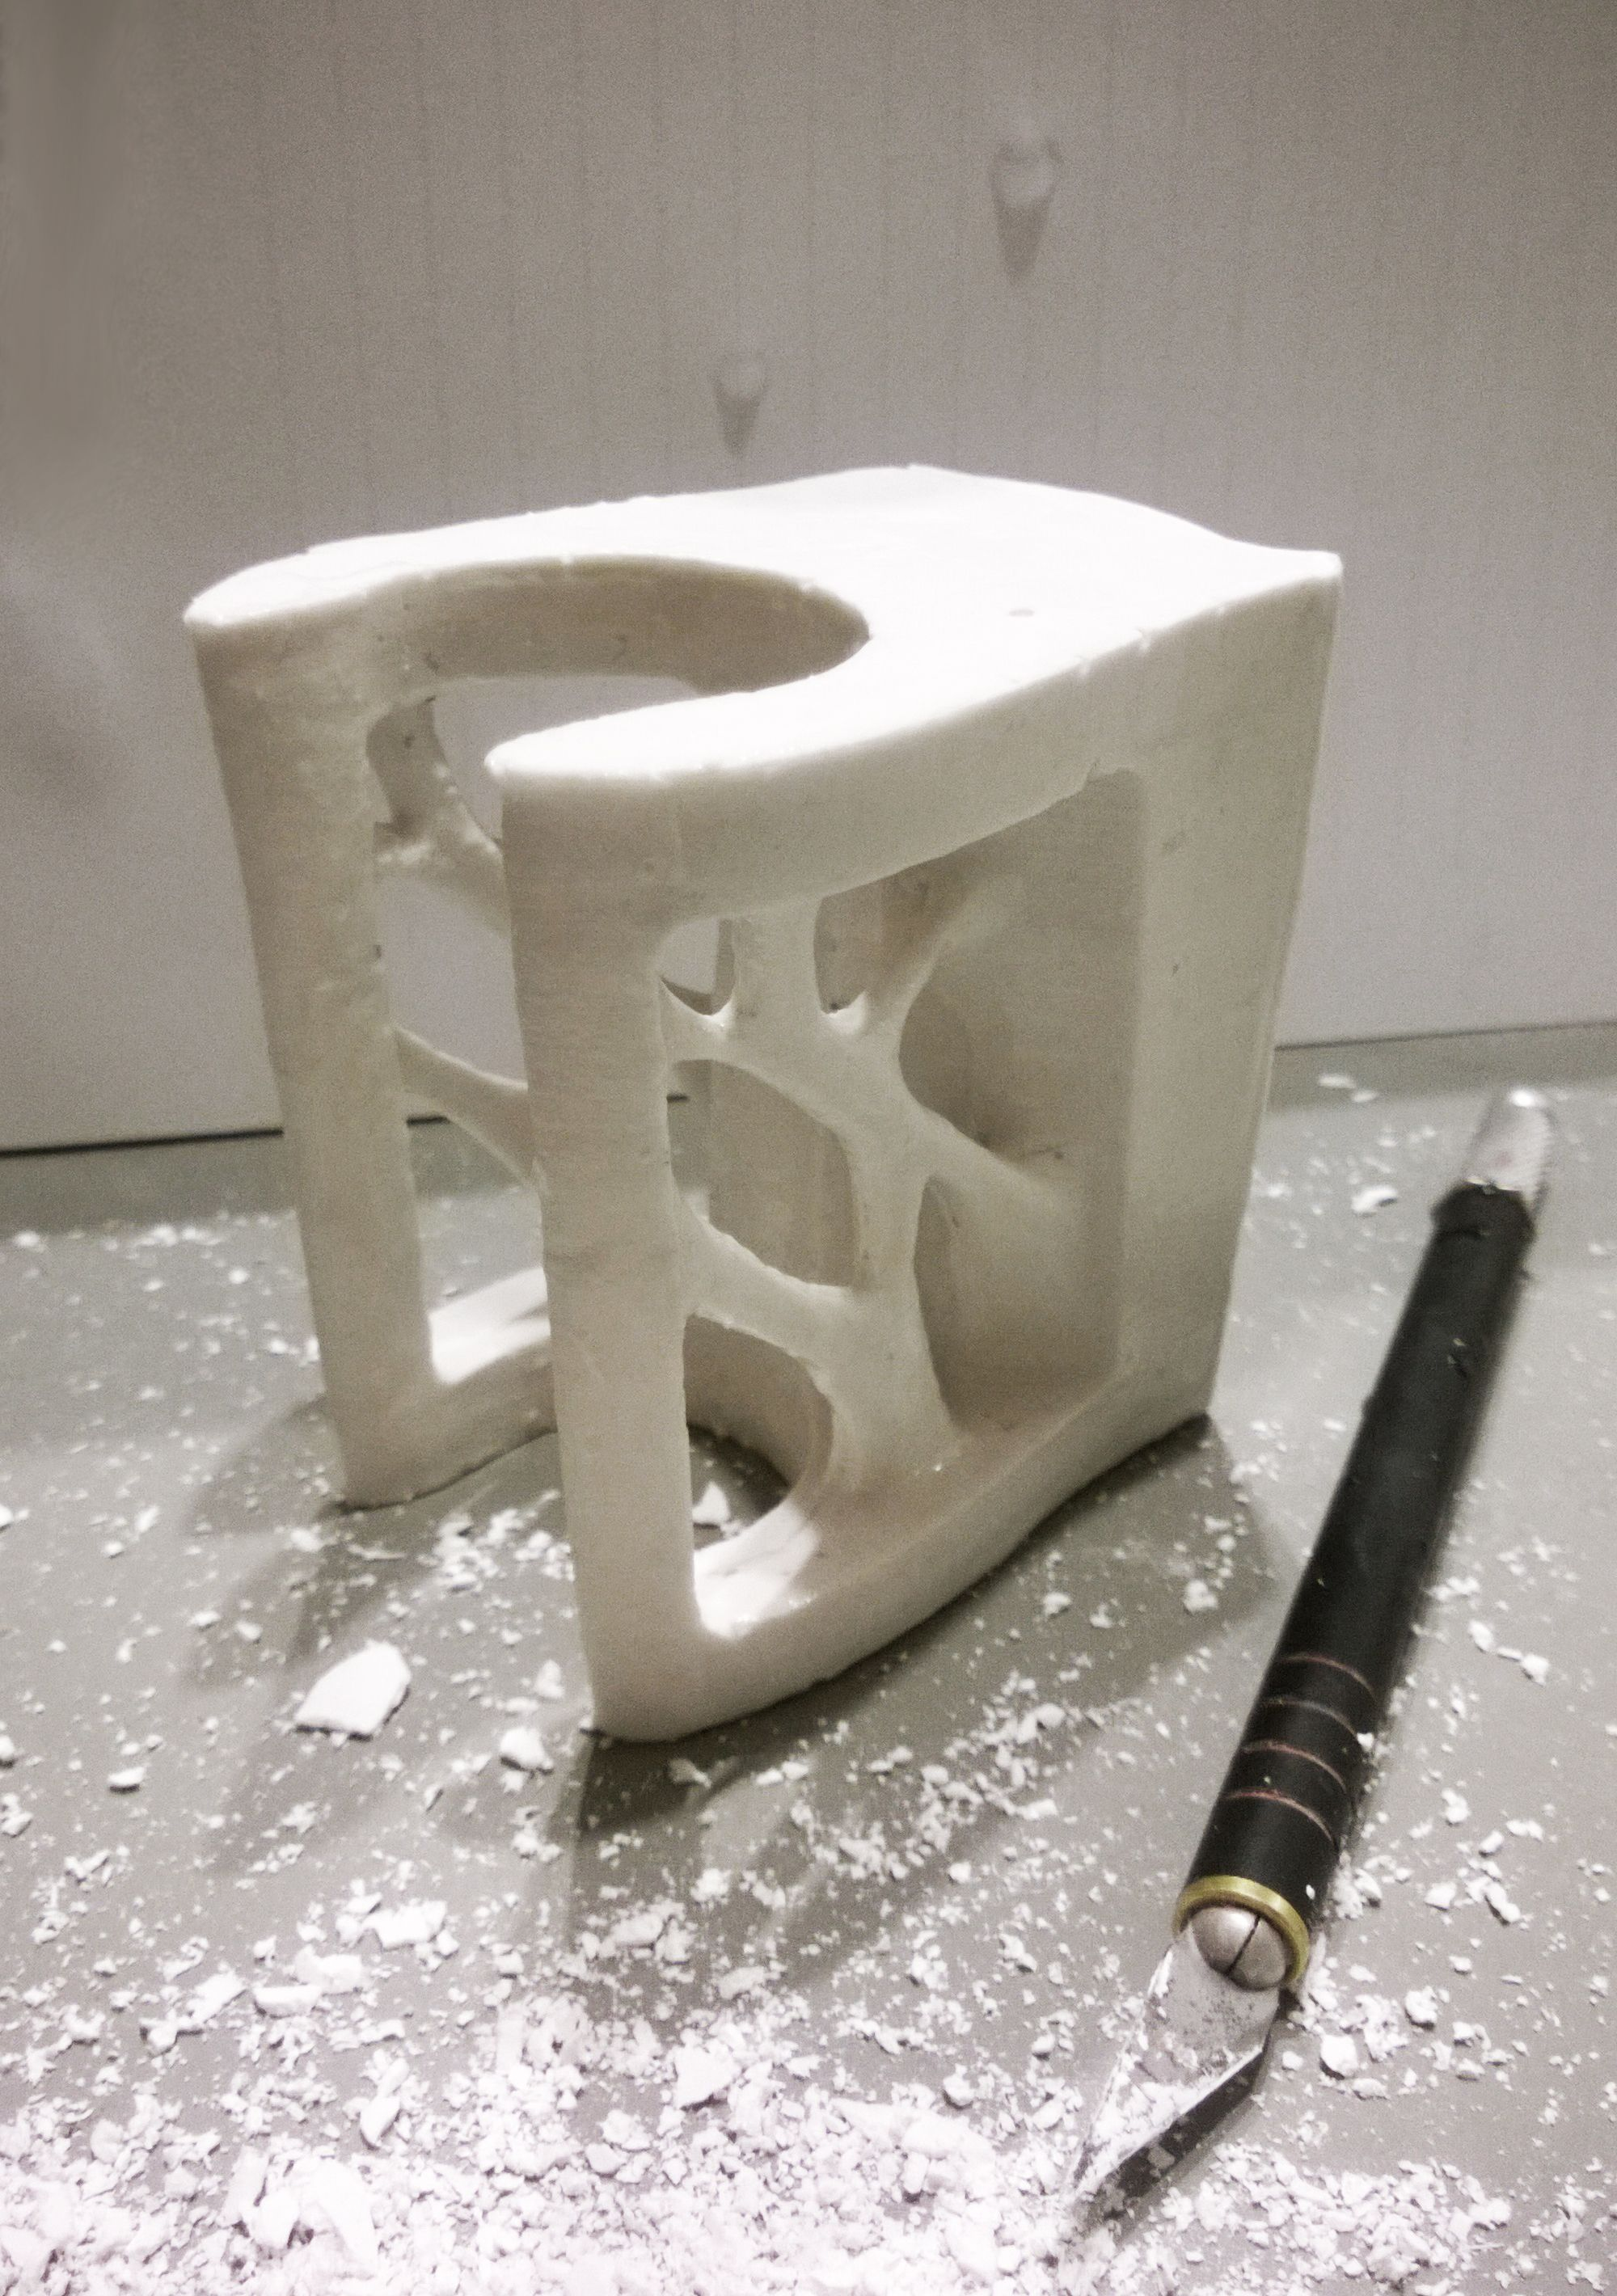 Working On A New Wall Mount For The Concrete Baseball Bat Piece Mold Making